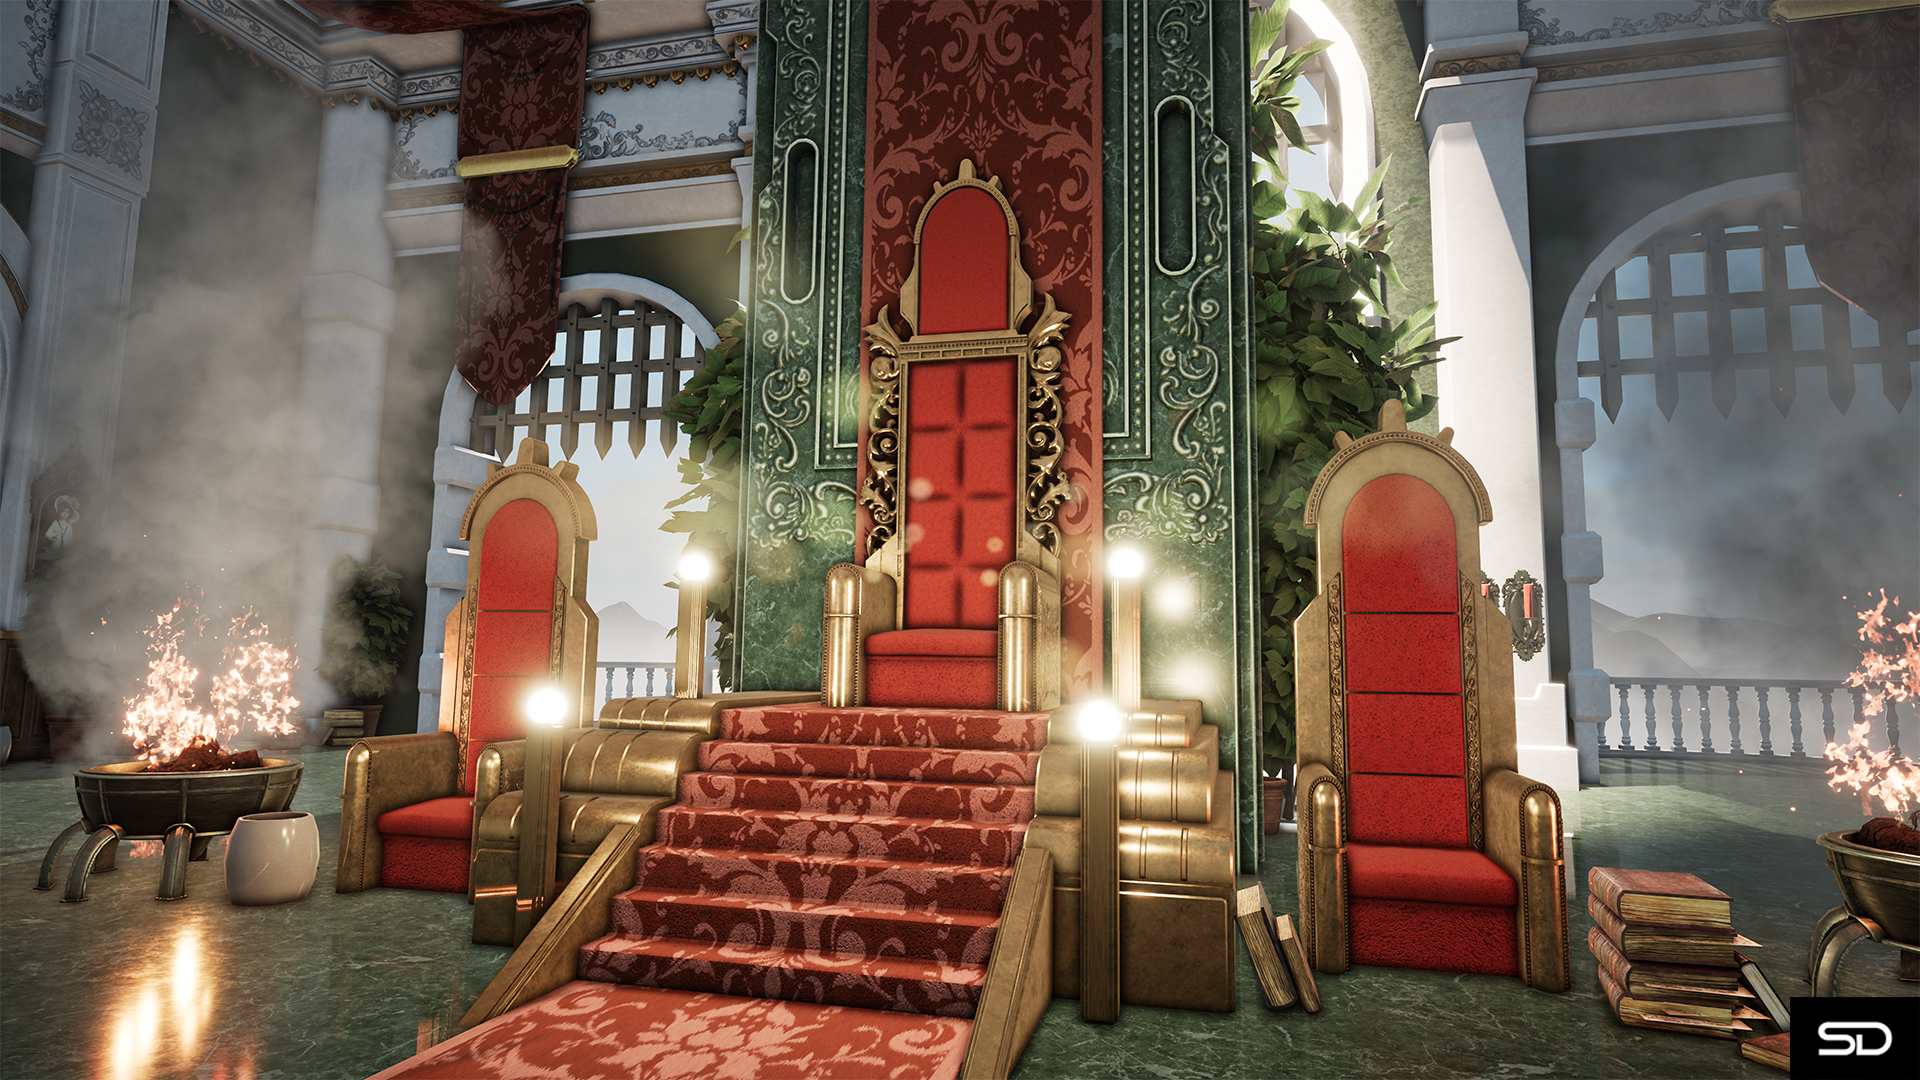 The King S Throne By Sdserenity For 3d Environment Art